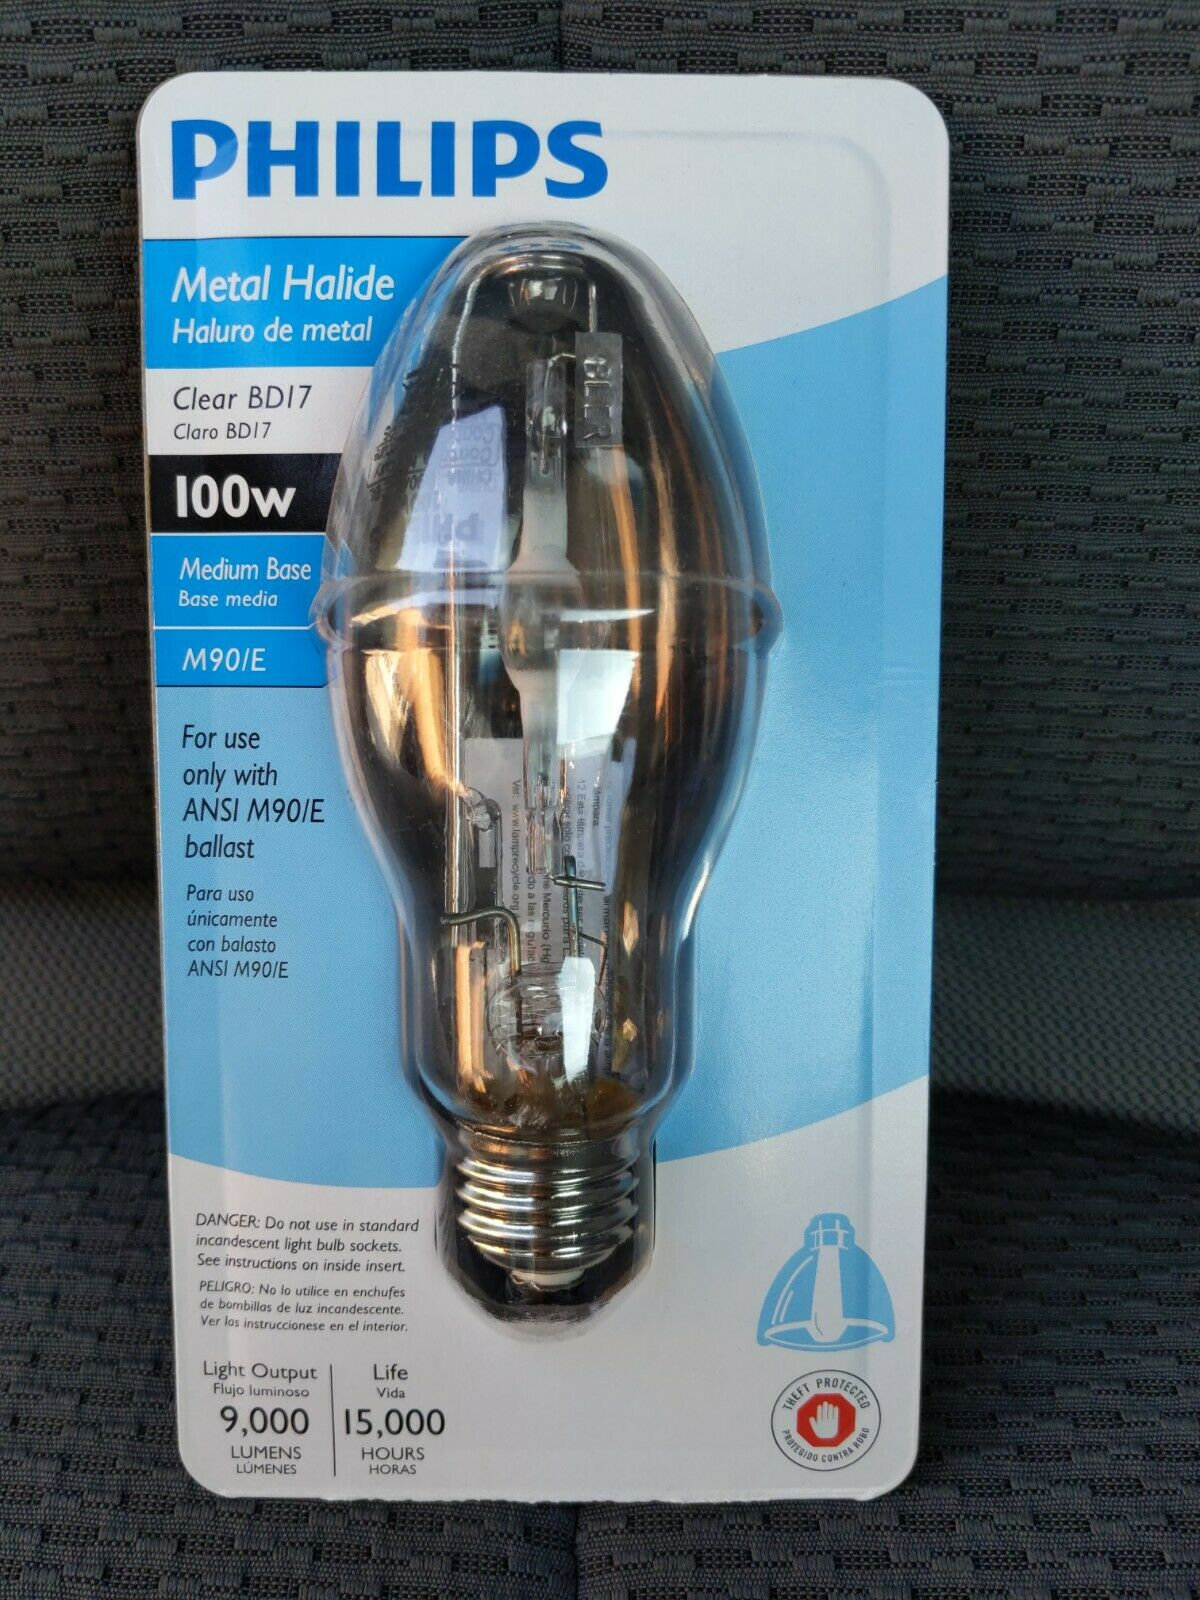 Philips Metal Halide Hid Light Bulb 100w Medium Base Clear Bd17 M90 E For Sale Online